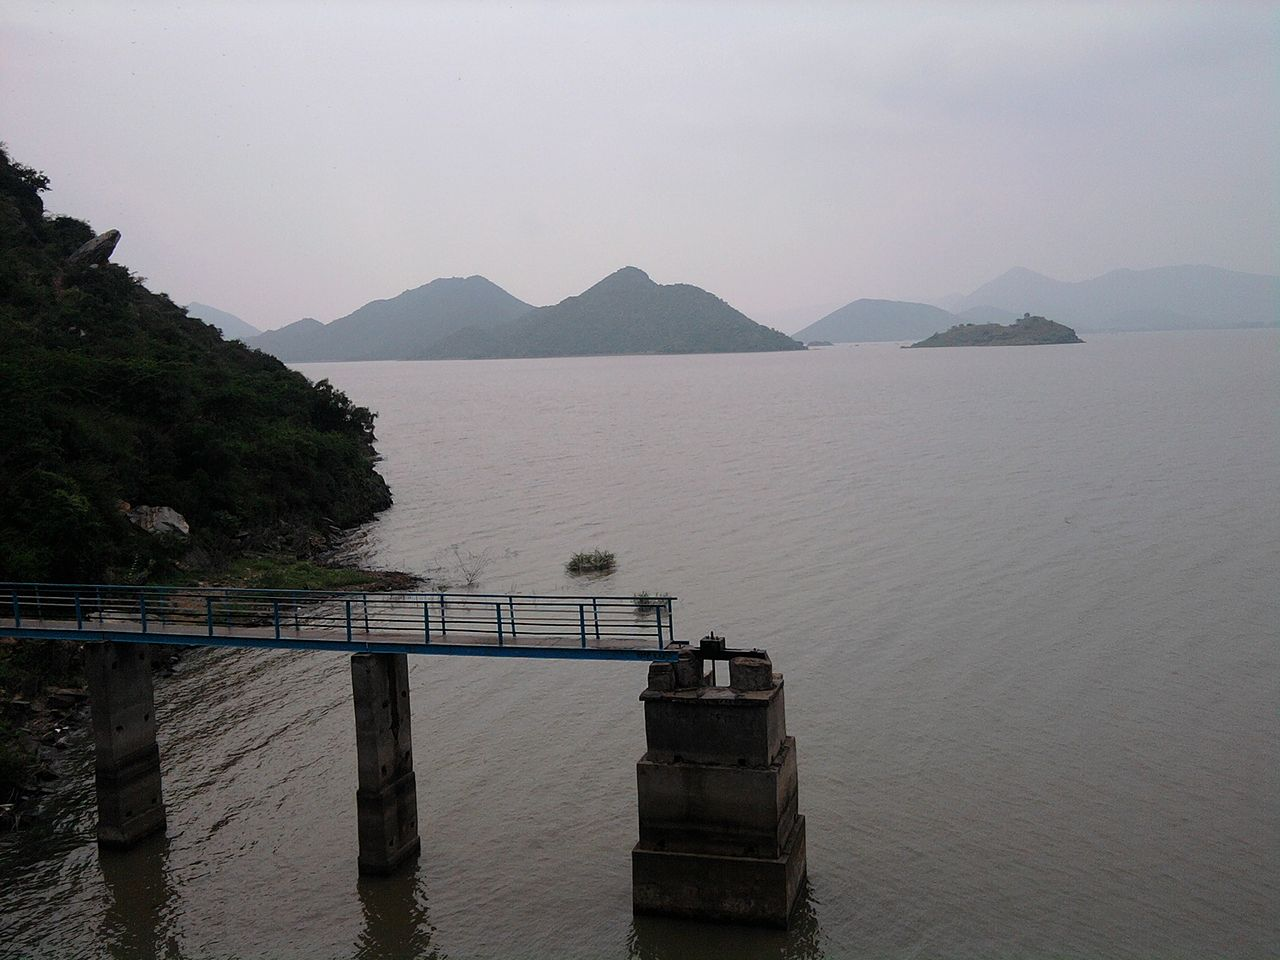 File:Cumbum Lake showing Jetty jpg - Wikipedia